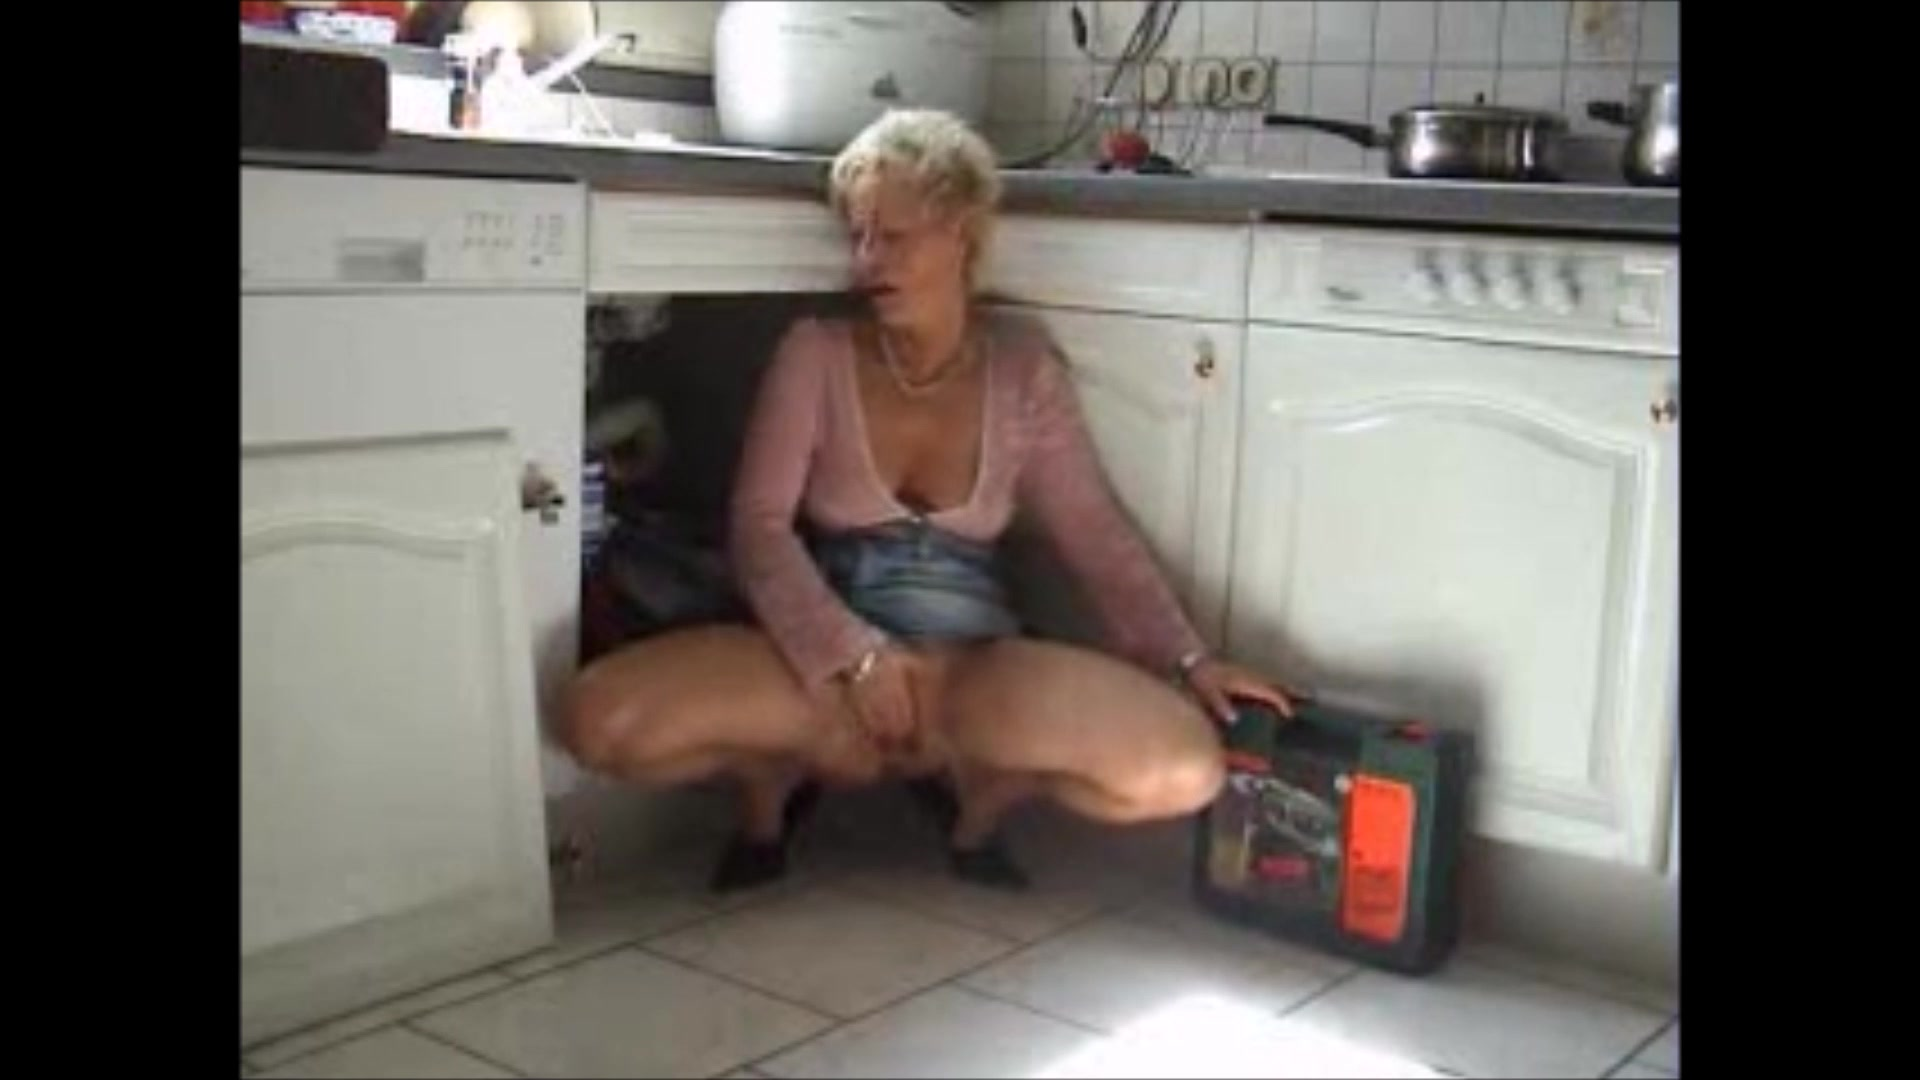 milf fickt monteur in kitchen Google xnxx sex video